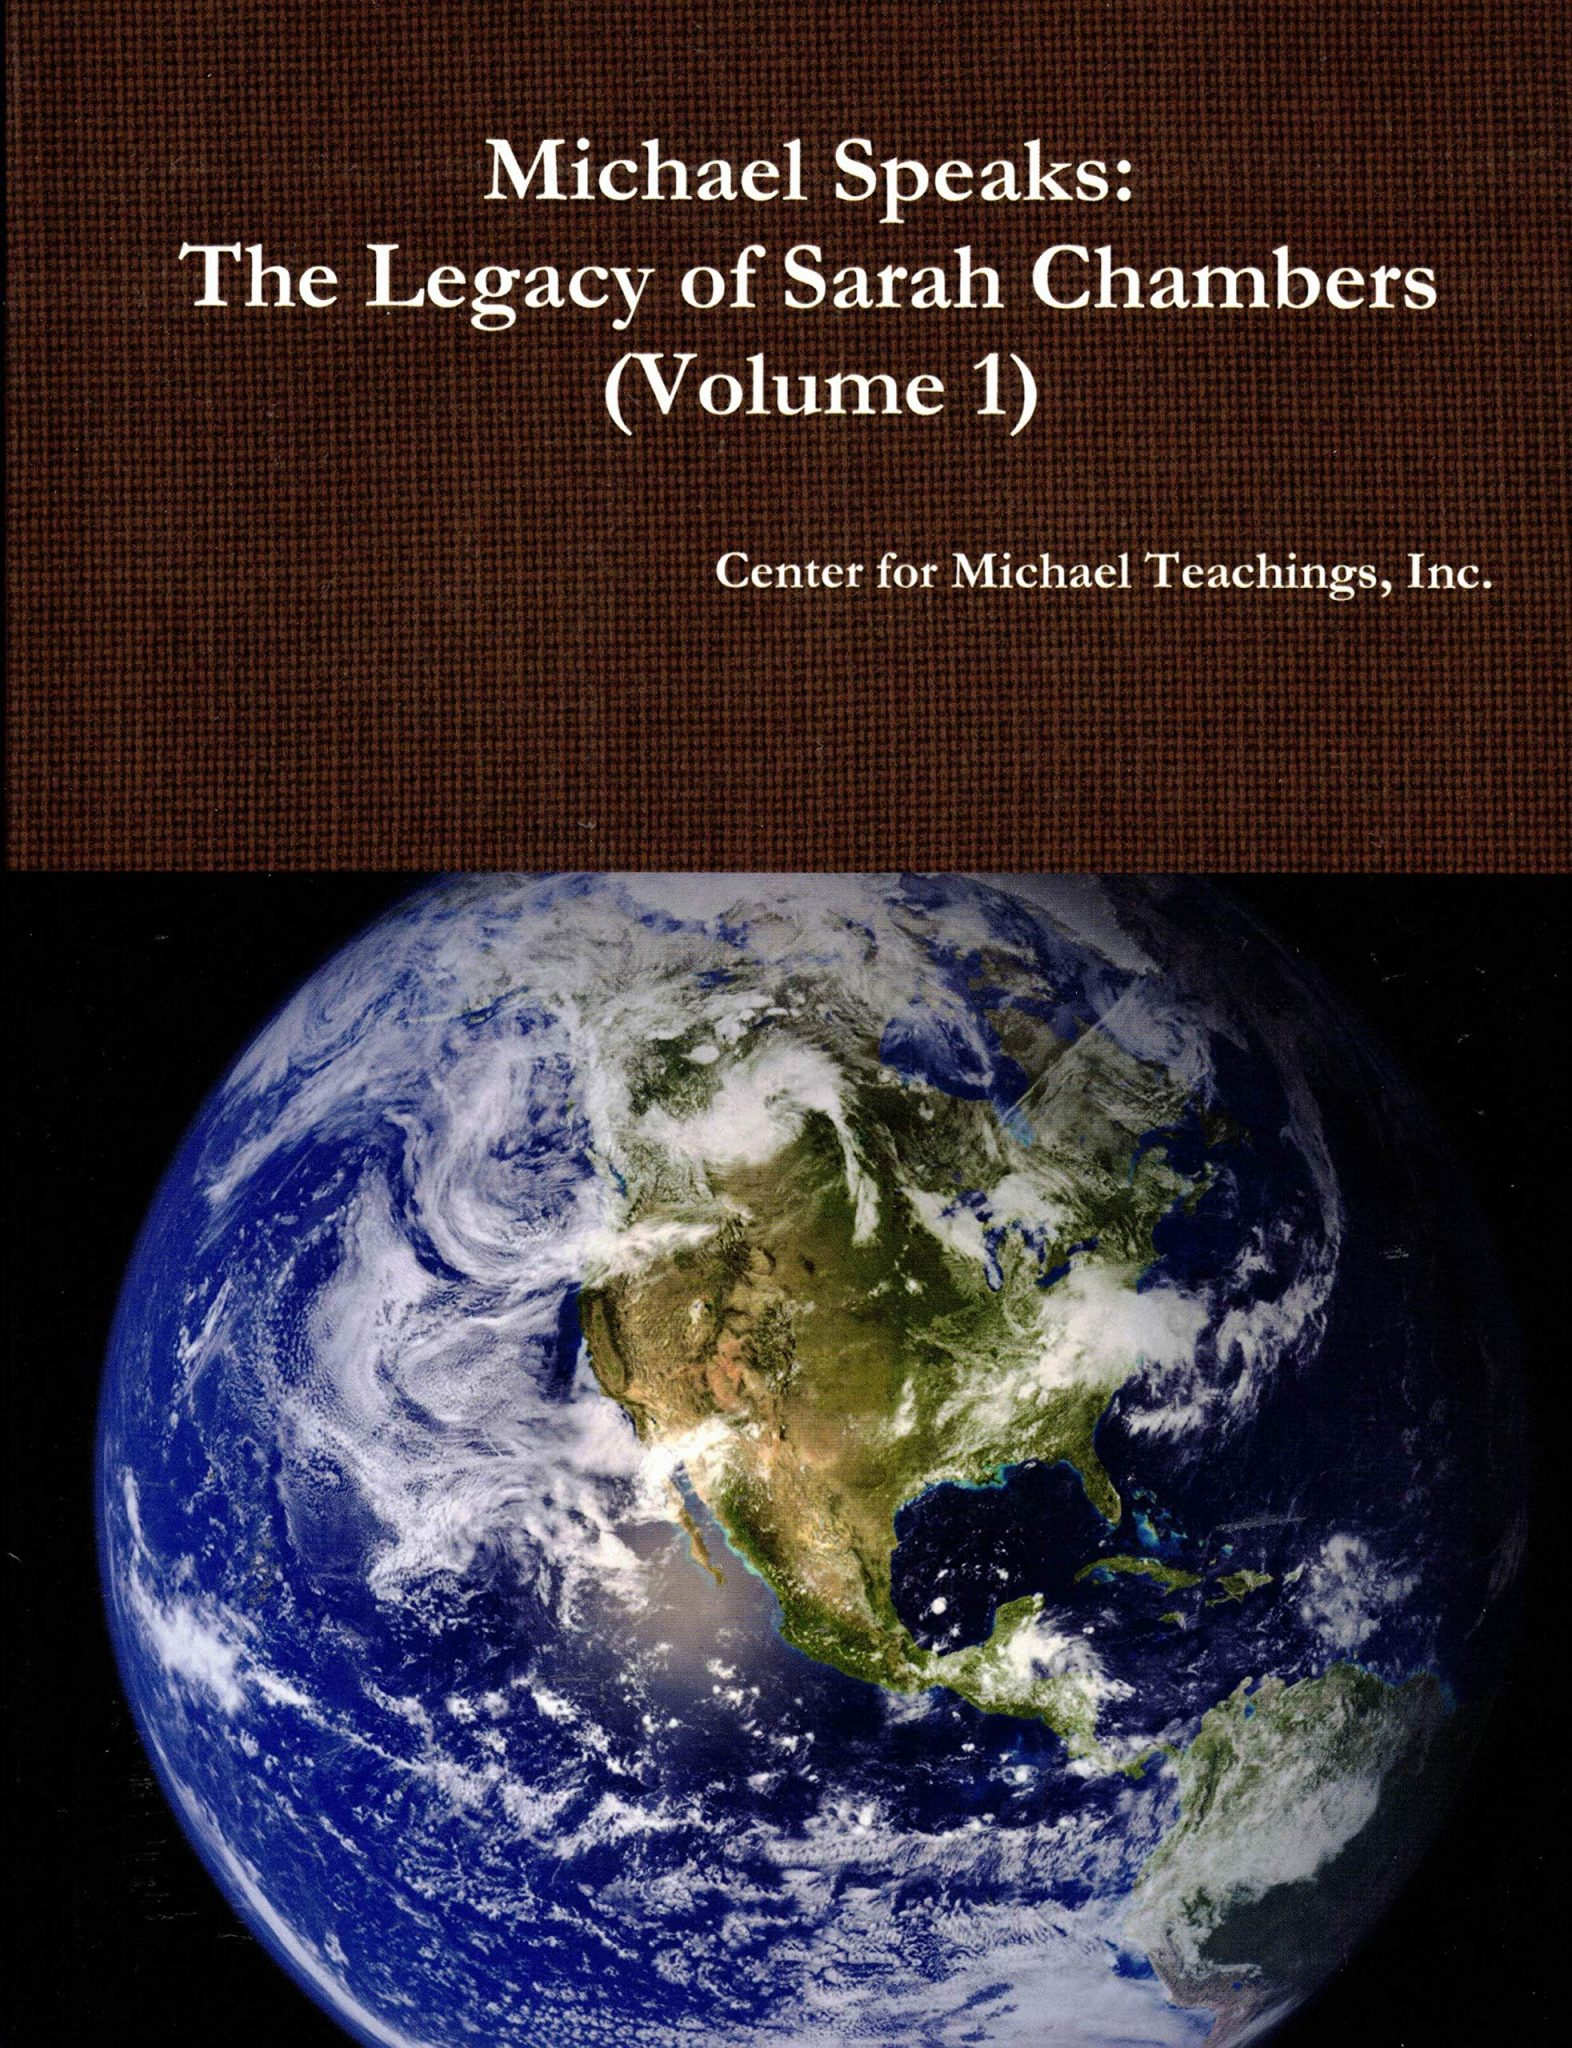 Michael Speaks The Legacy of Sarah Chambers